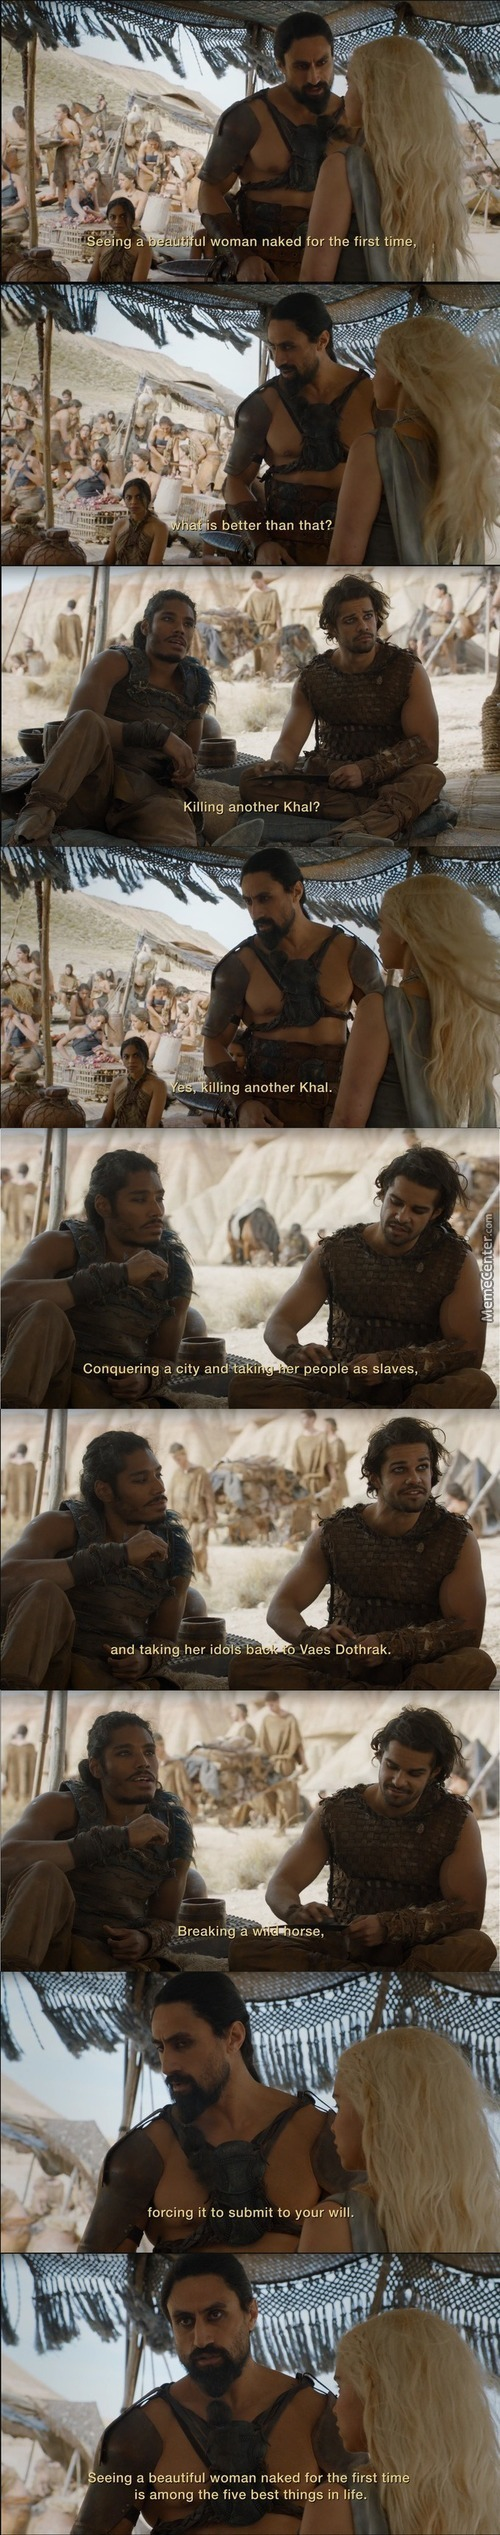 Monty Python Meets Game Of Thrones